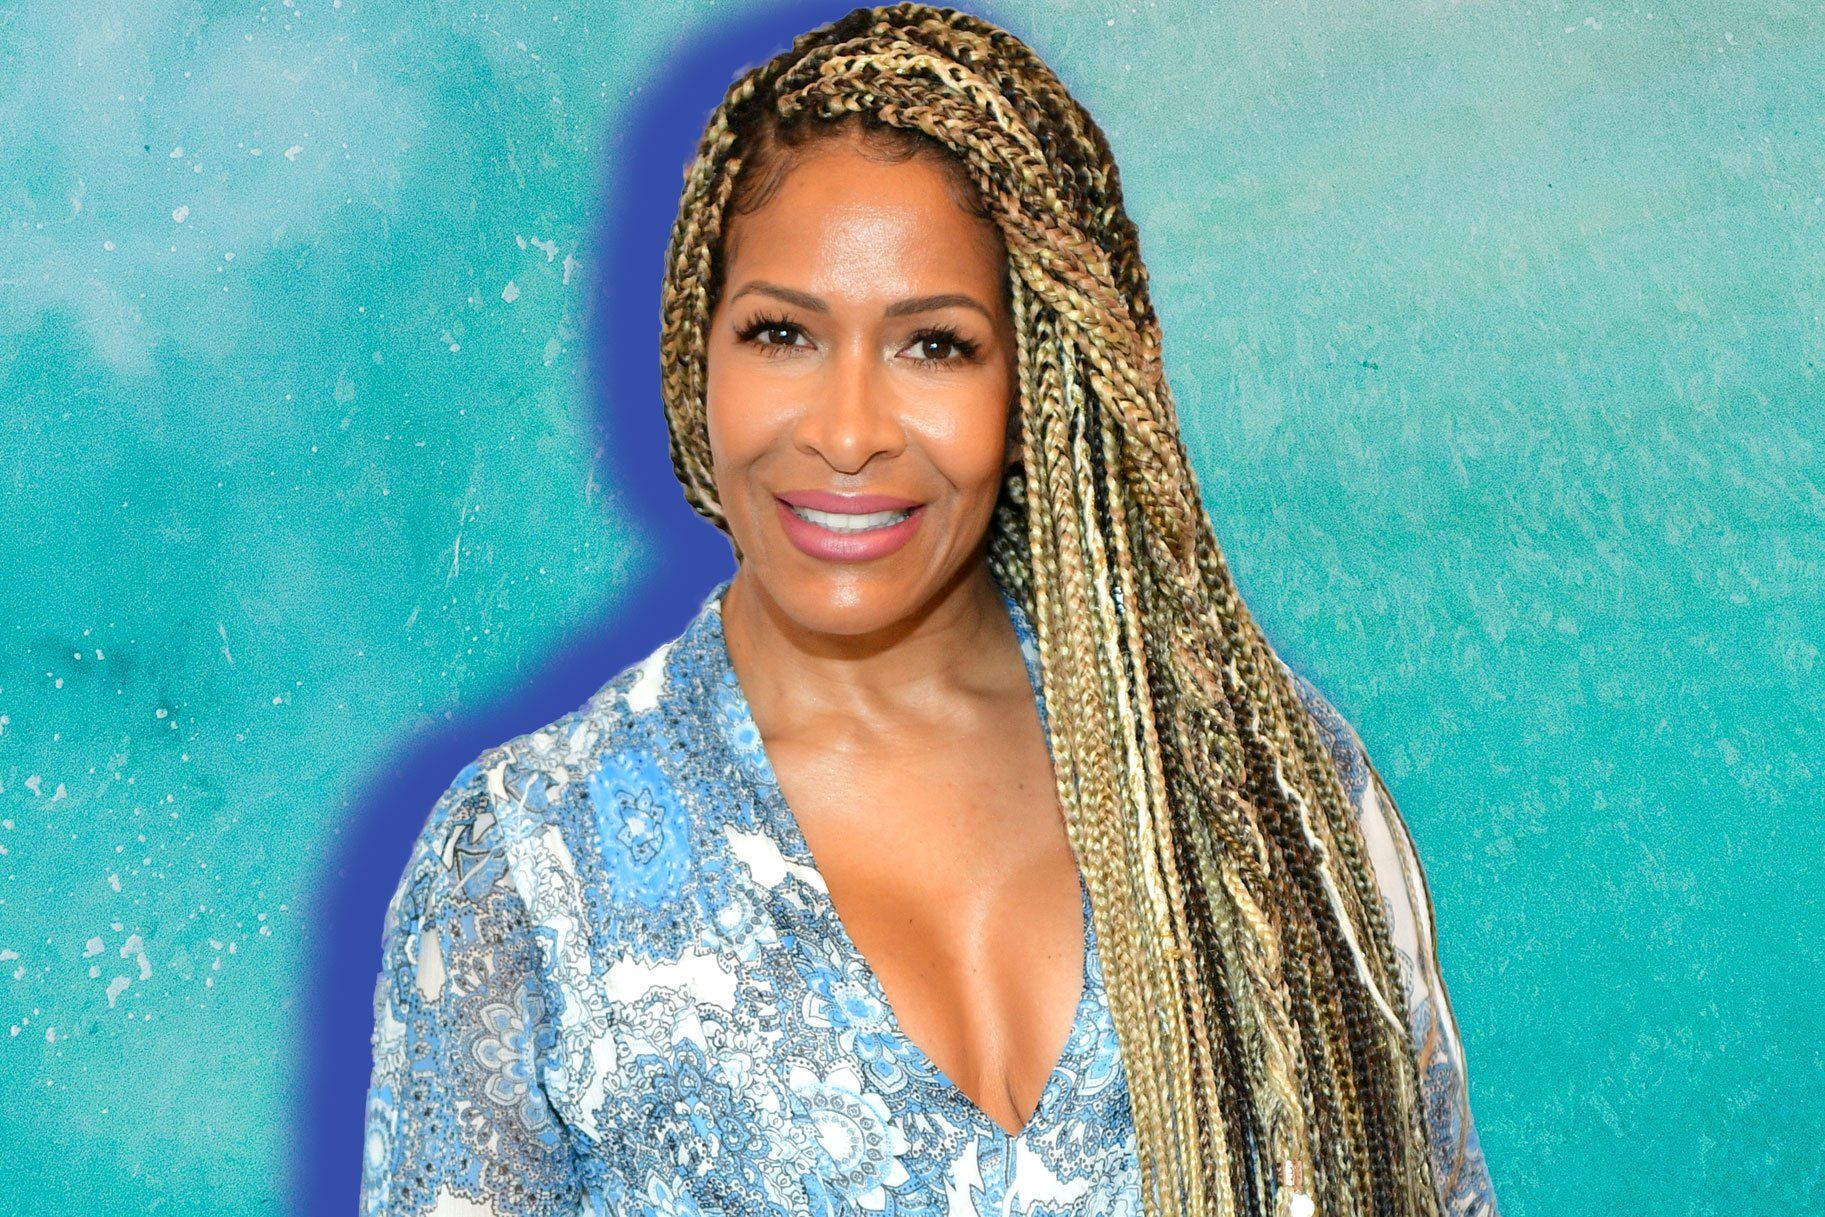 Sheree Whitfield Really Worried After Her Mom Goes Missing - Asks Fans To 'Pray For My Mother's Safe Return' #Instagram, #RealHousewives, #Rhoa, #ShereeWhitfield celebrityinsider.org #Entertainment #celebrityinsider #celebritynews #celebrities #celebrity